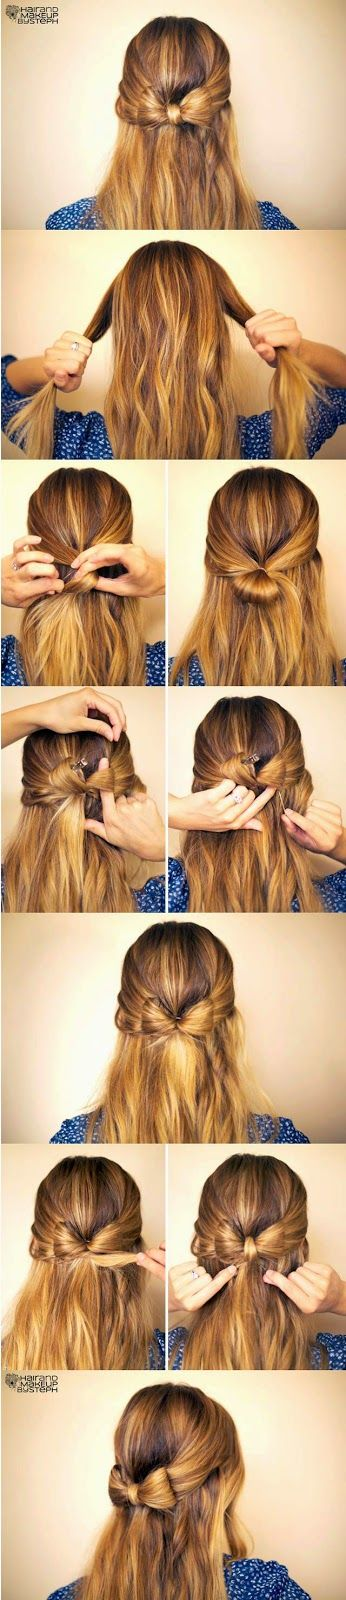 How to Style Hair - Hair Styling Instructions and Techniques